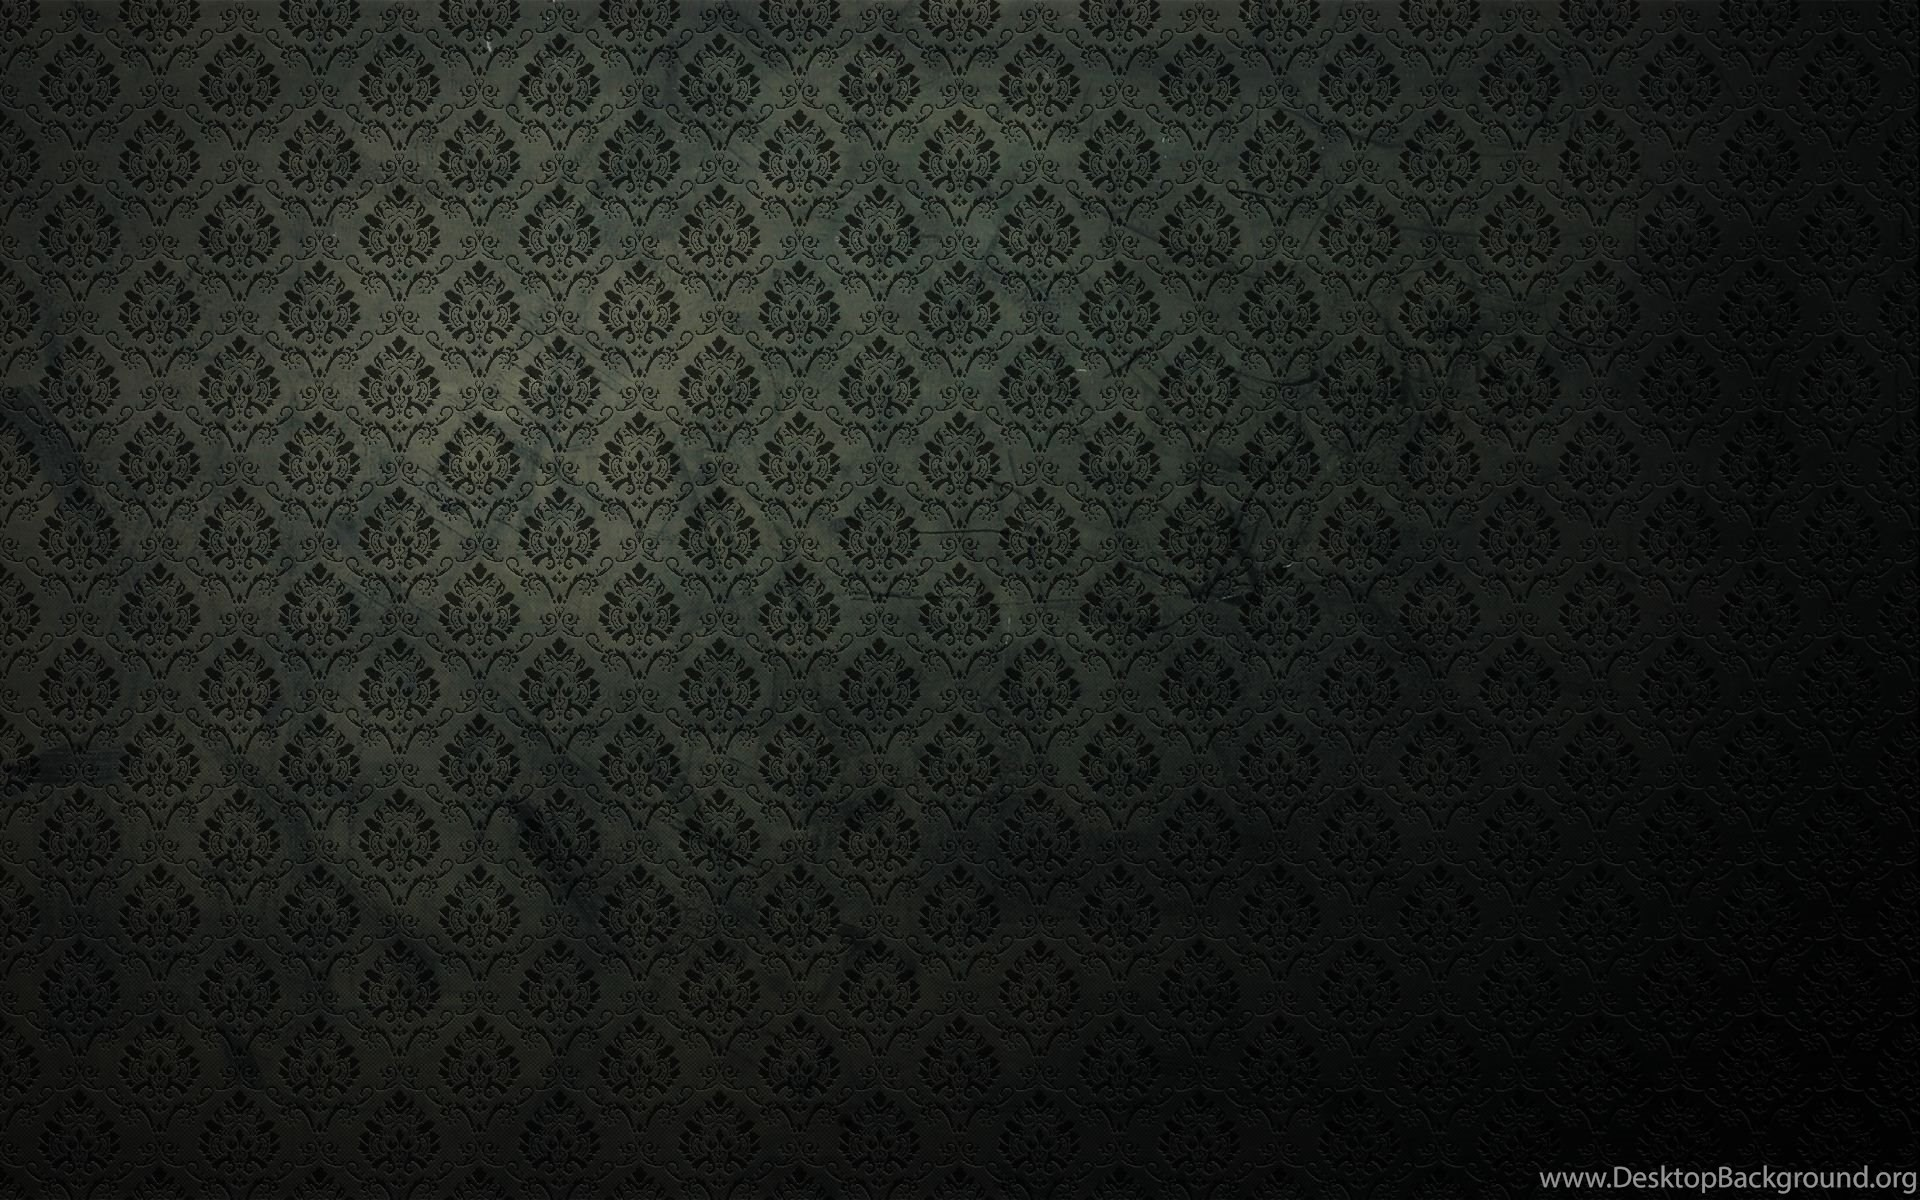 1920x1200 jordan logo black and white wallpaper - michael jordan logo wallpapers  wallpapers cave desktop background